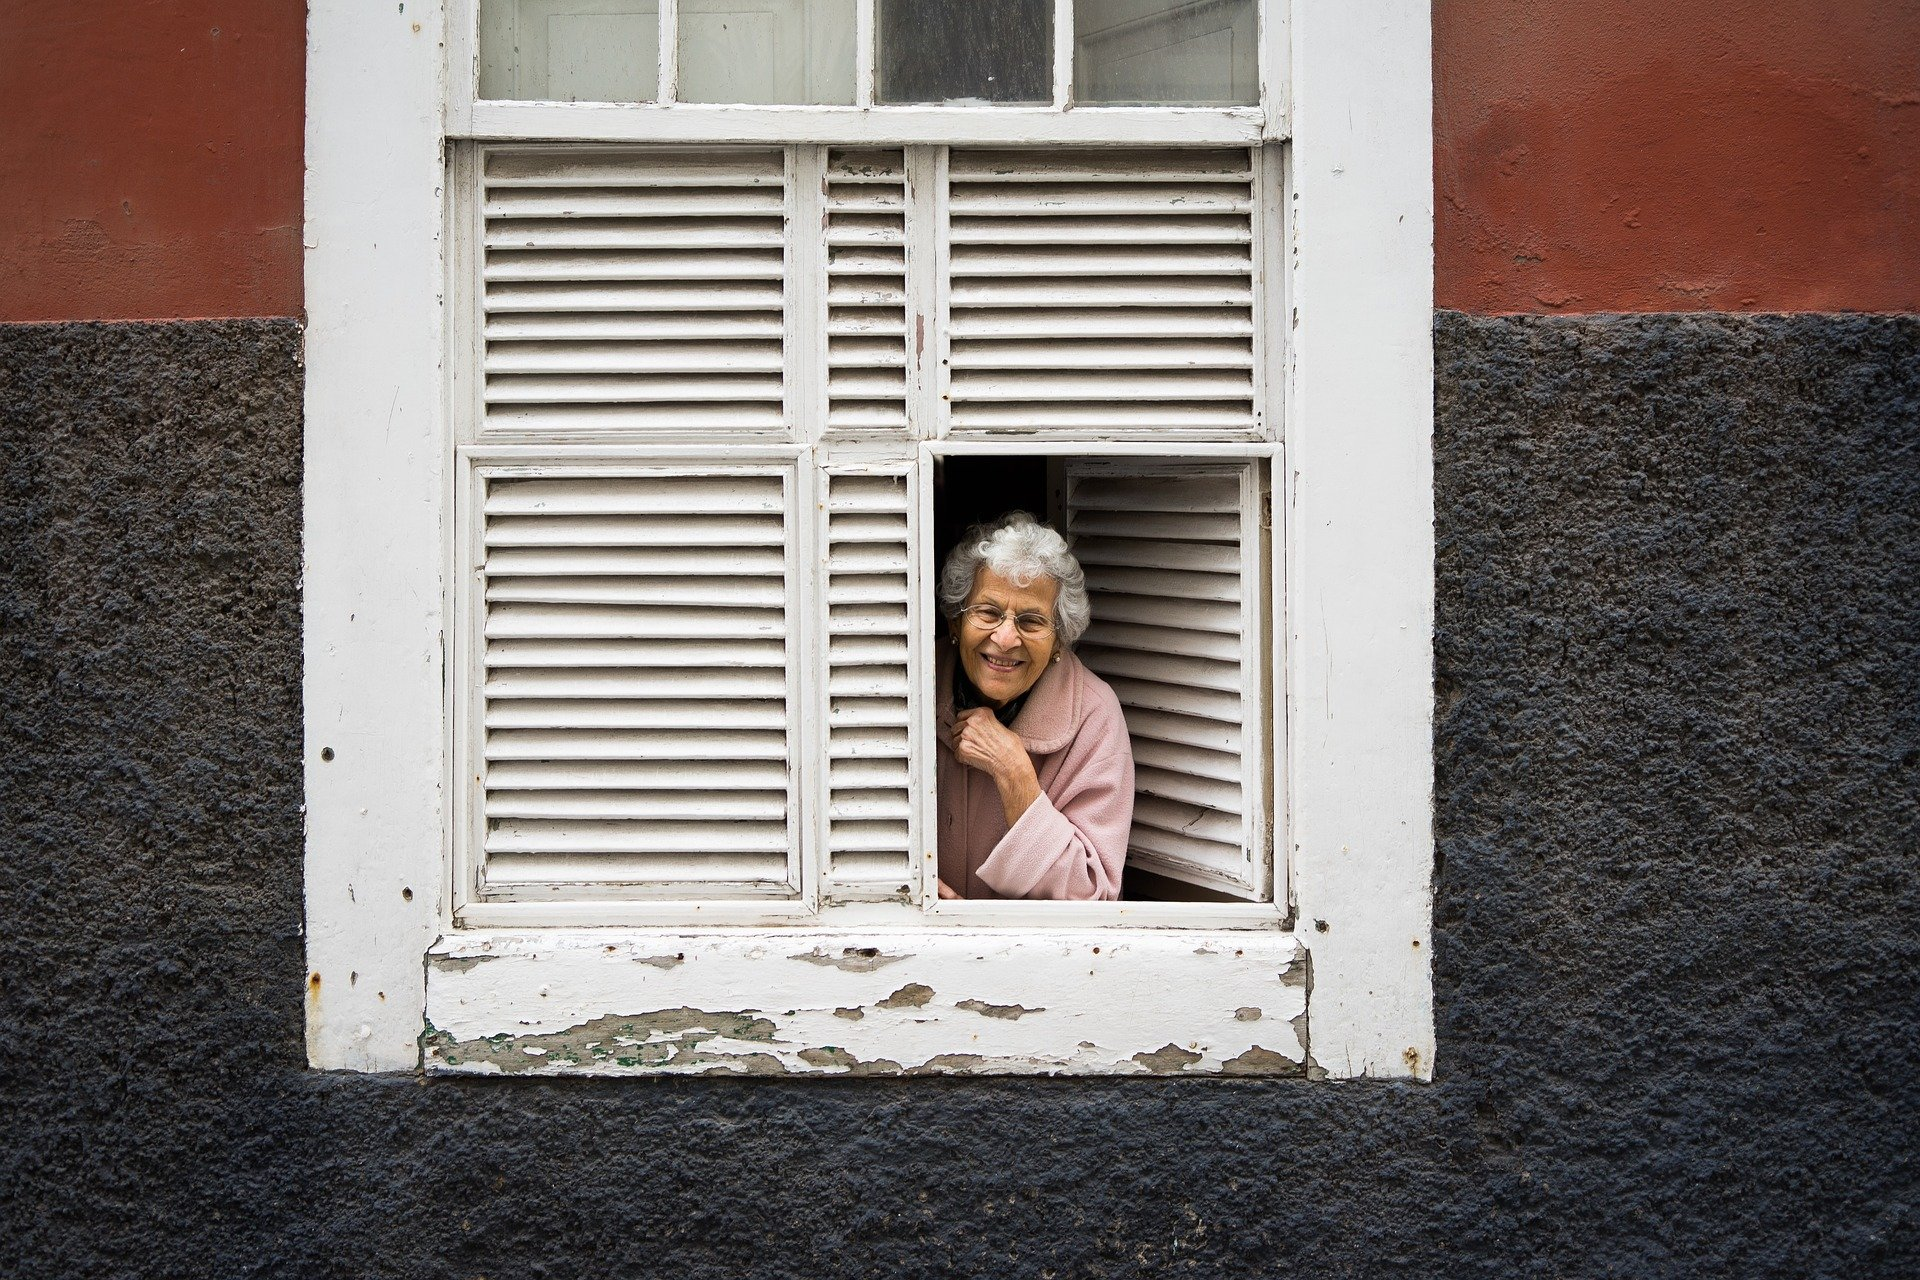 Grandma looking out the window | Source: Pixabay